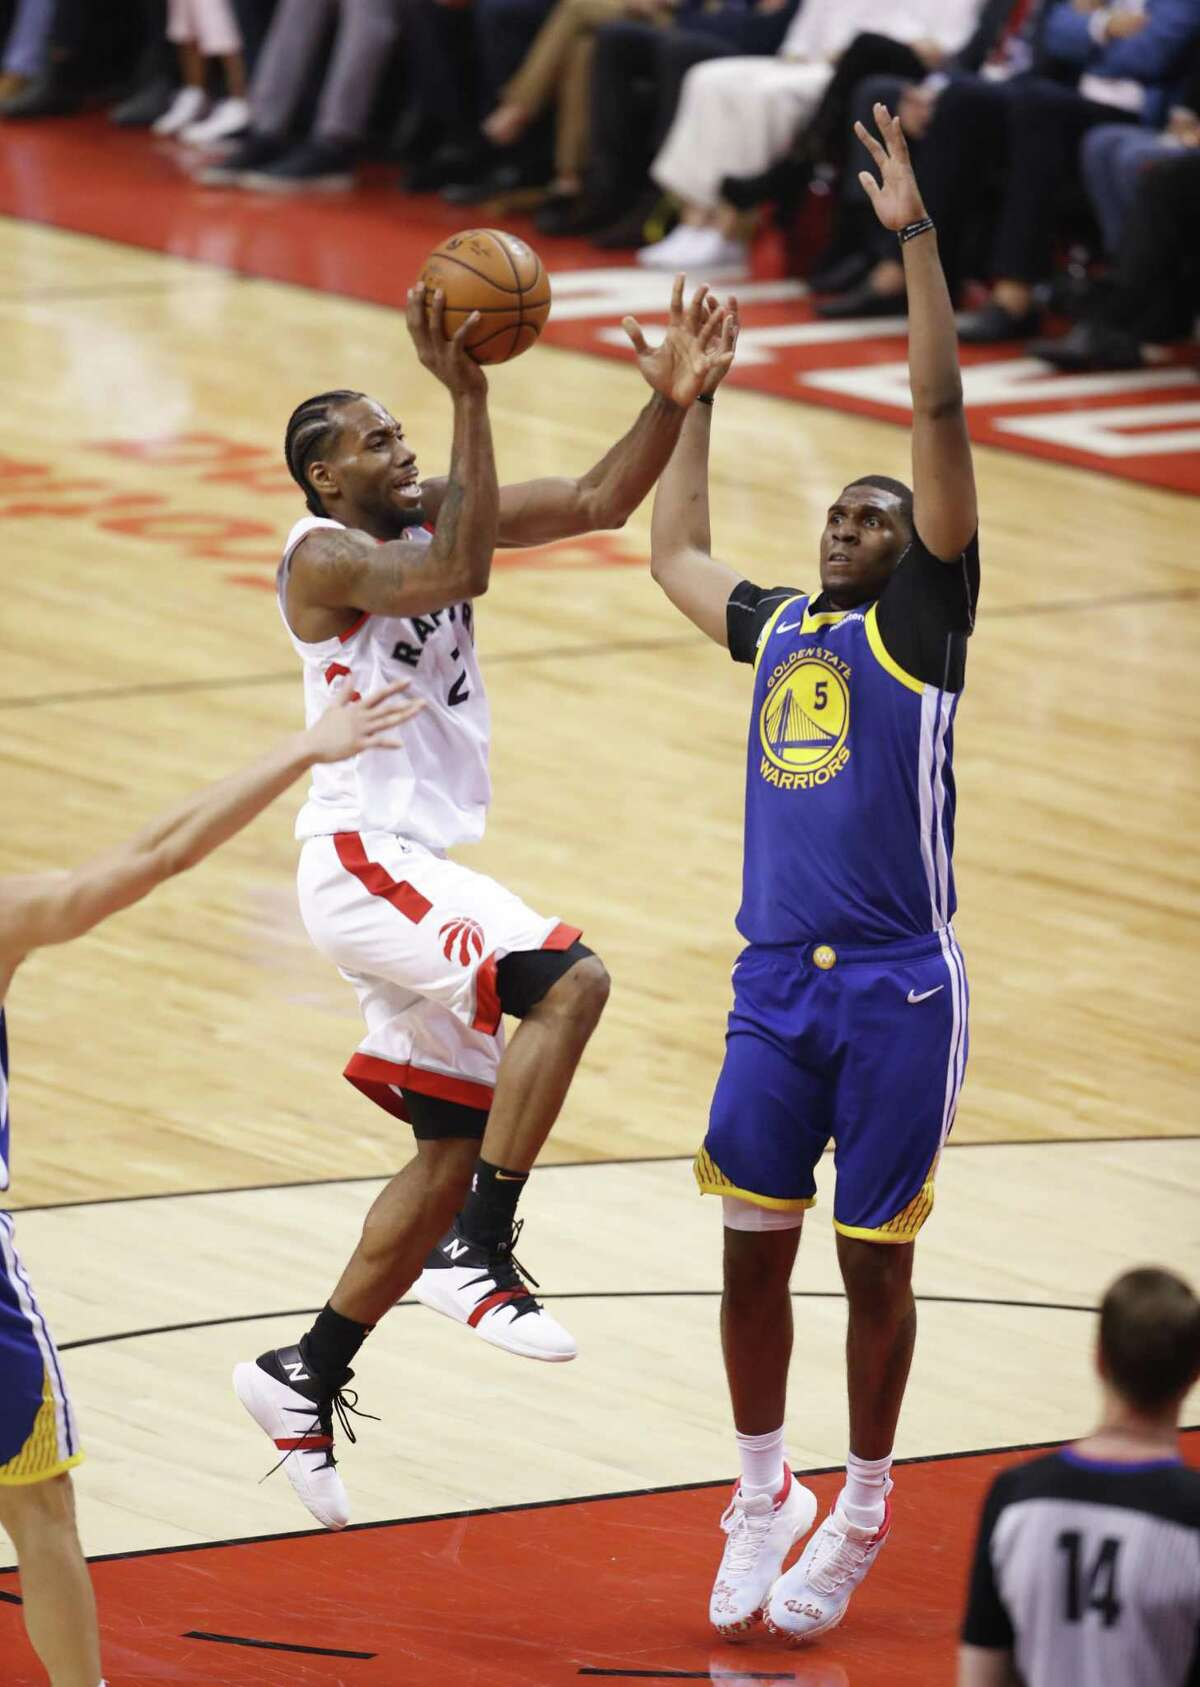 Toronto Raptors' Kawhi Leonard shoots over Golden State Warriors' Kevon Looney in the second quarter during game 5 of the NBA Finals between the Golden State Warriors and the Toronto Raptors at Scotiabank Arena on Monday, June 10, 2019 in Toronto, Ontario, Canada.